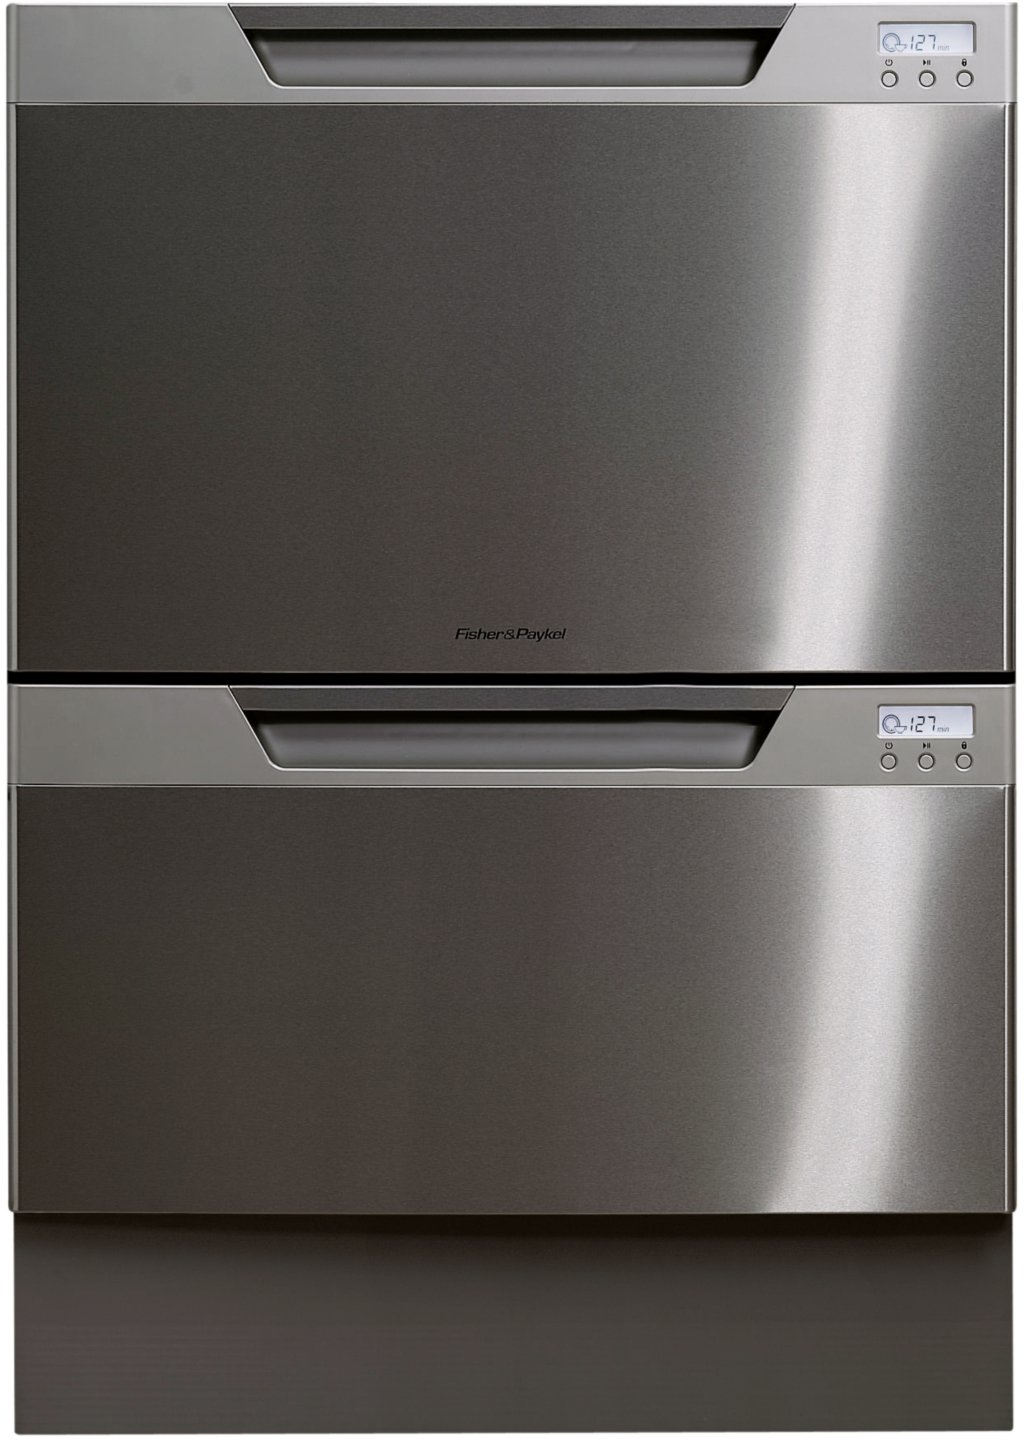 Fisher and paykel 2 drawer dishwasher - Fisherpaykel Dd60dchx7 Dishwashers Double Dishdrawer